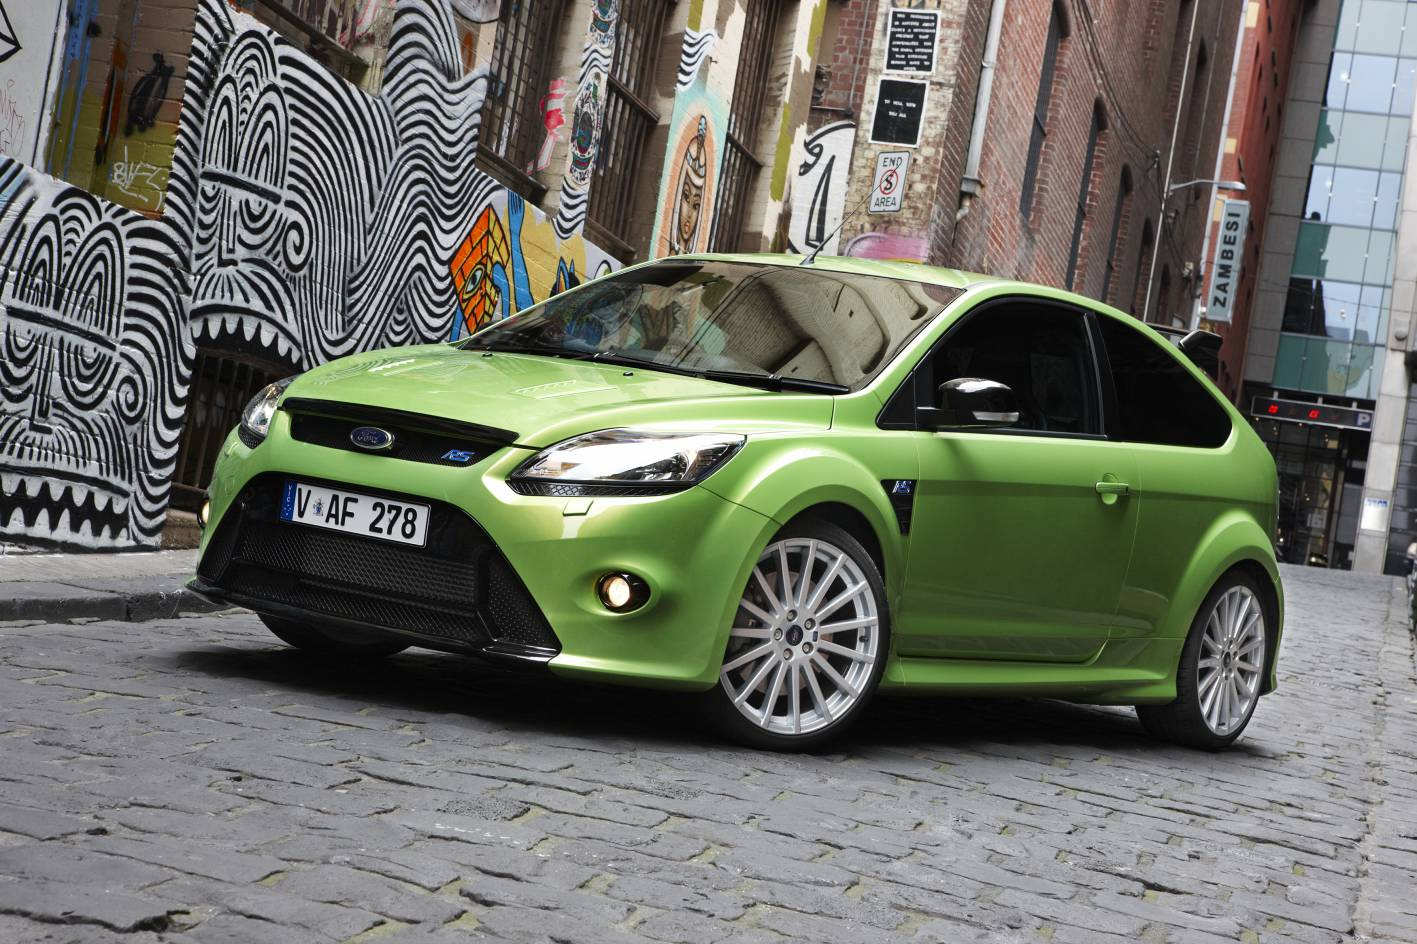 Subaru 2.5 Rs For Sale >> News - Hot Ford Focus RS Now On-Sale In Australia